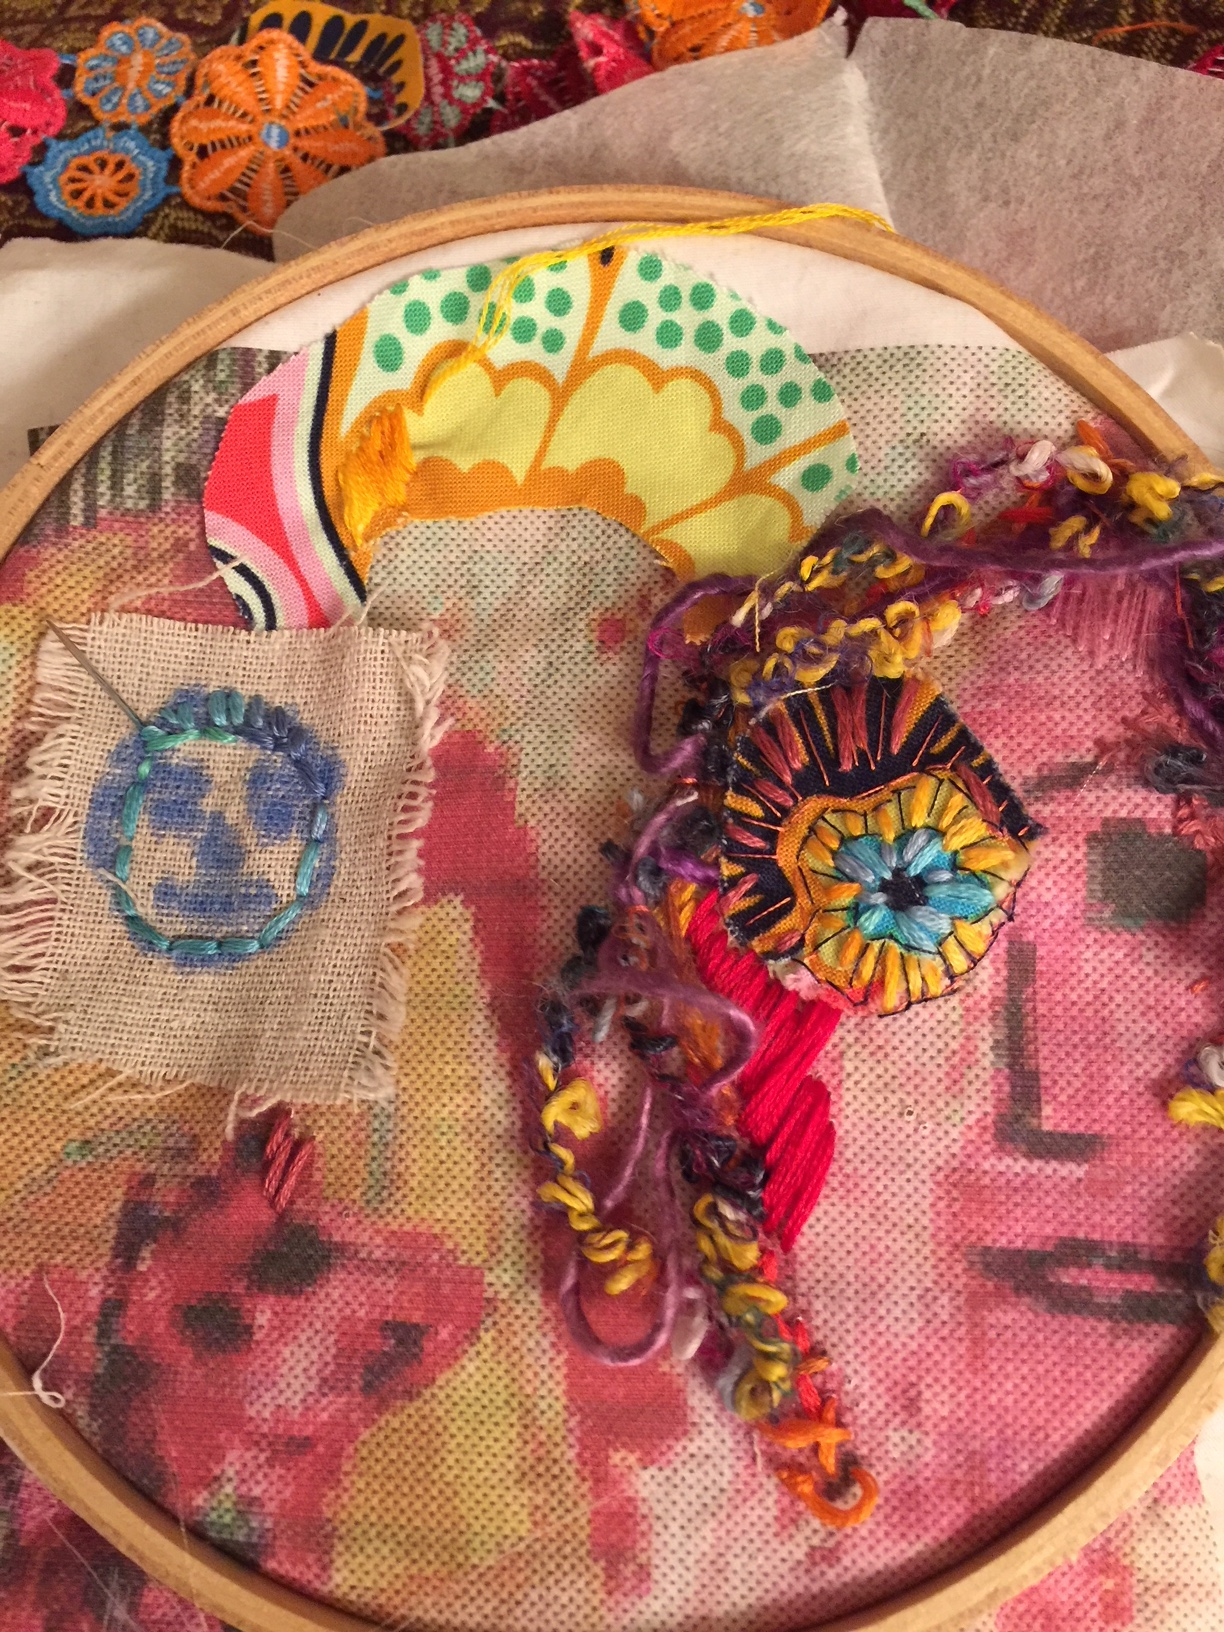 embroidery on painted fabric in progress